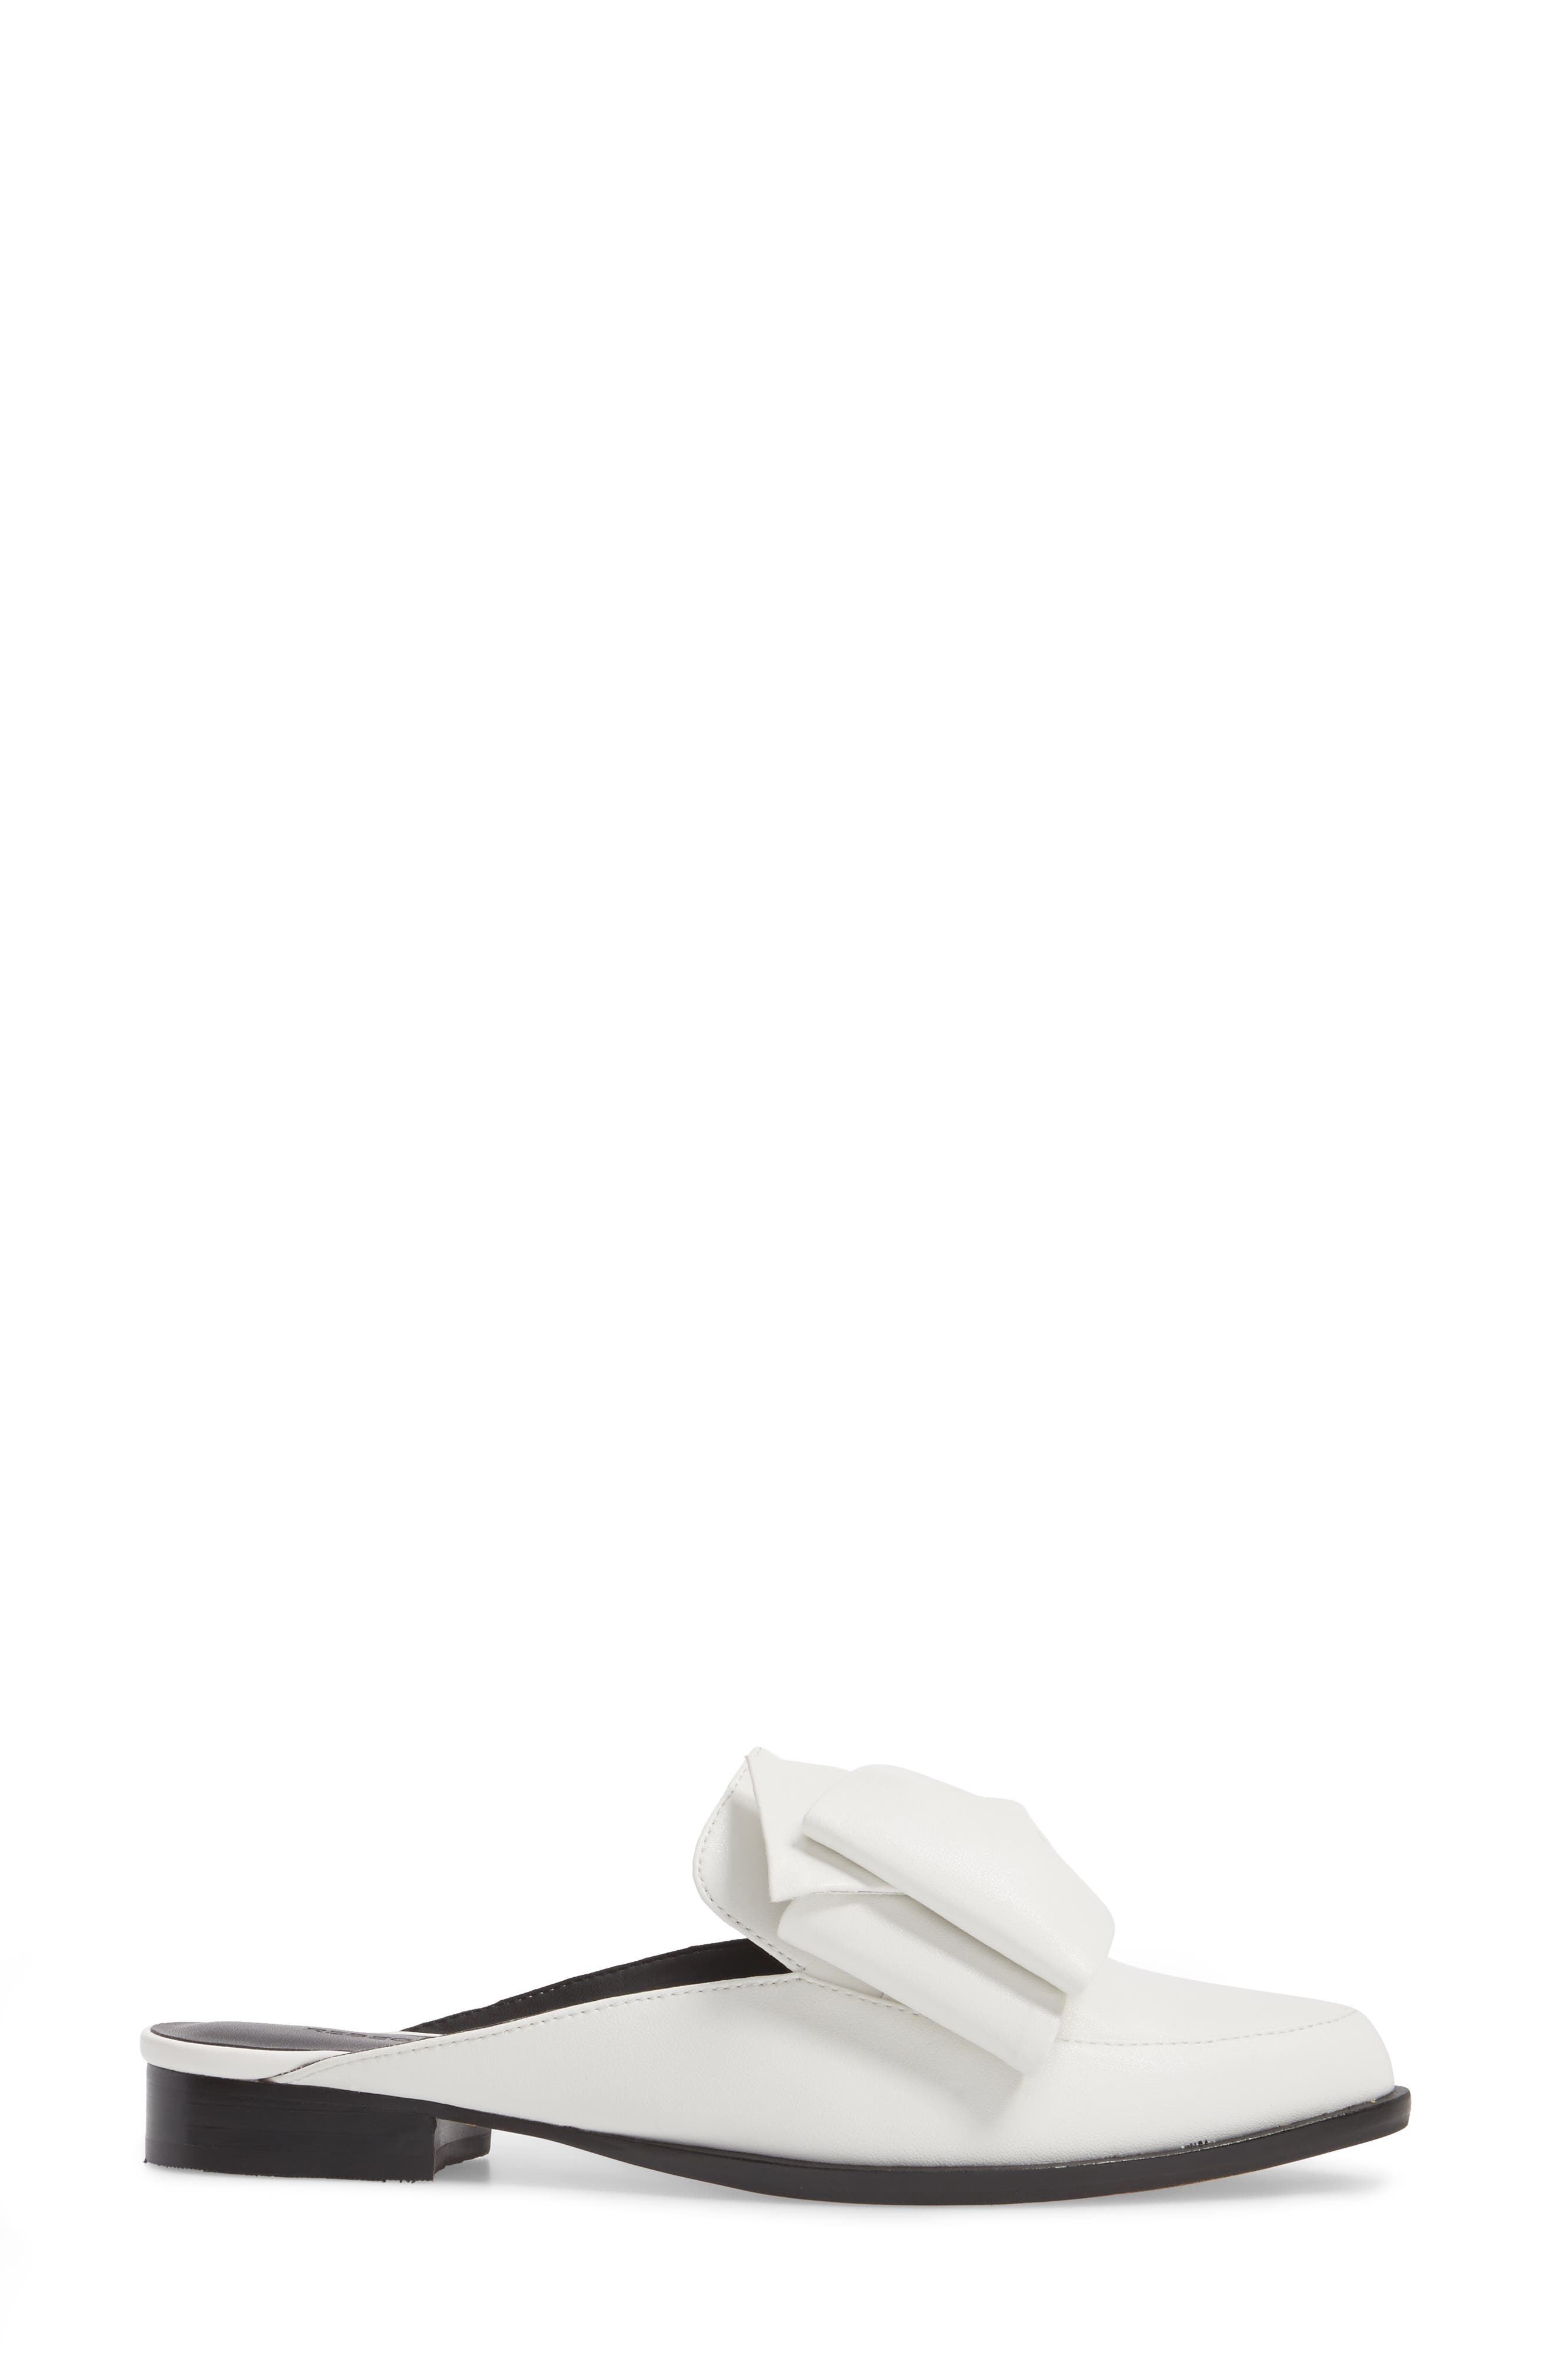 Mabel Loafer Mule,                             Alternate thumbnail 3, color,                             OPTIC WHITE LEATHER